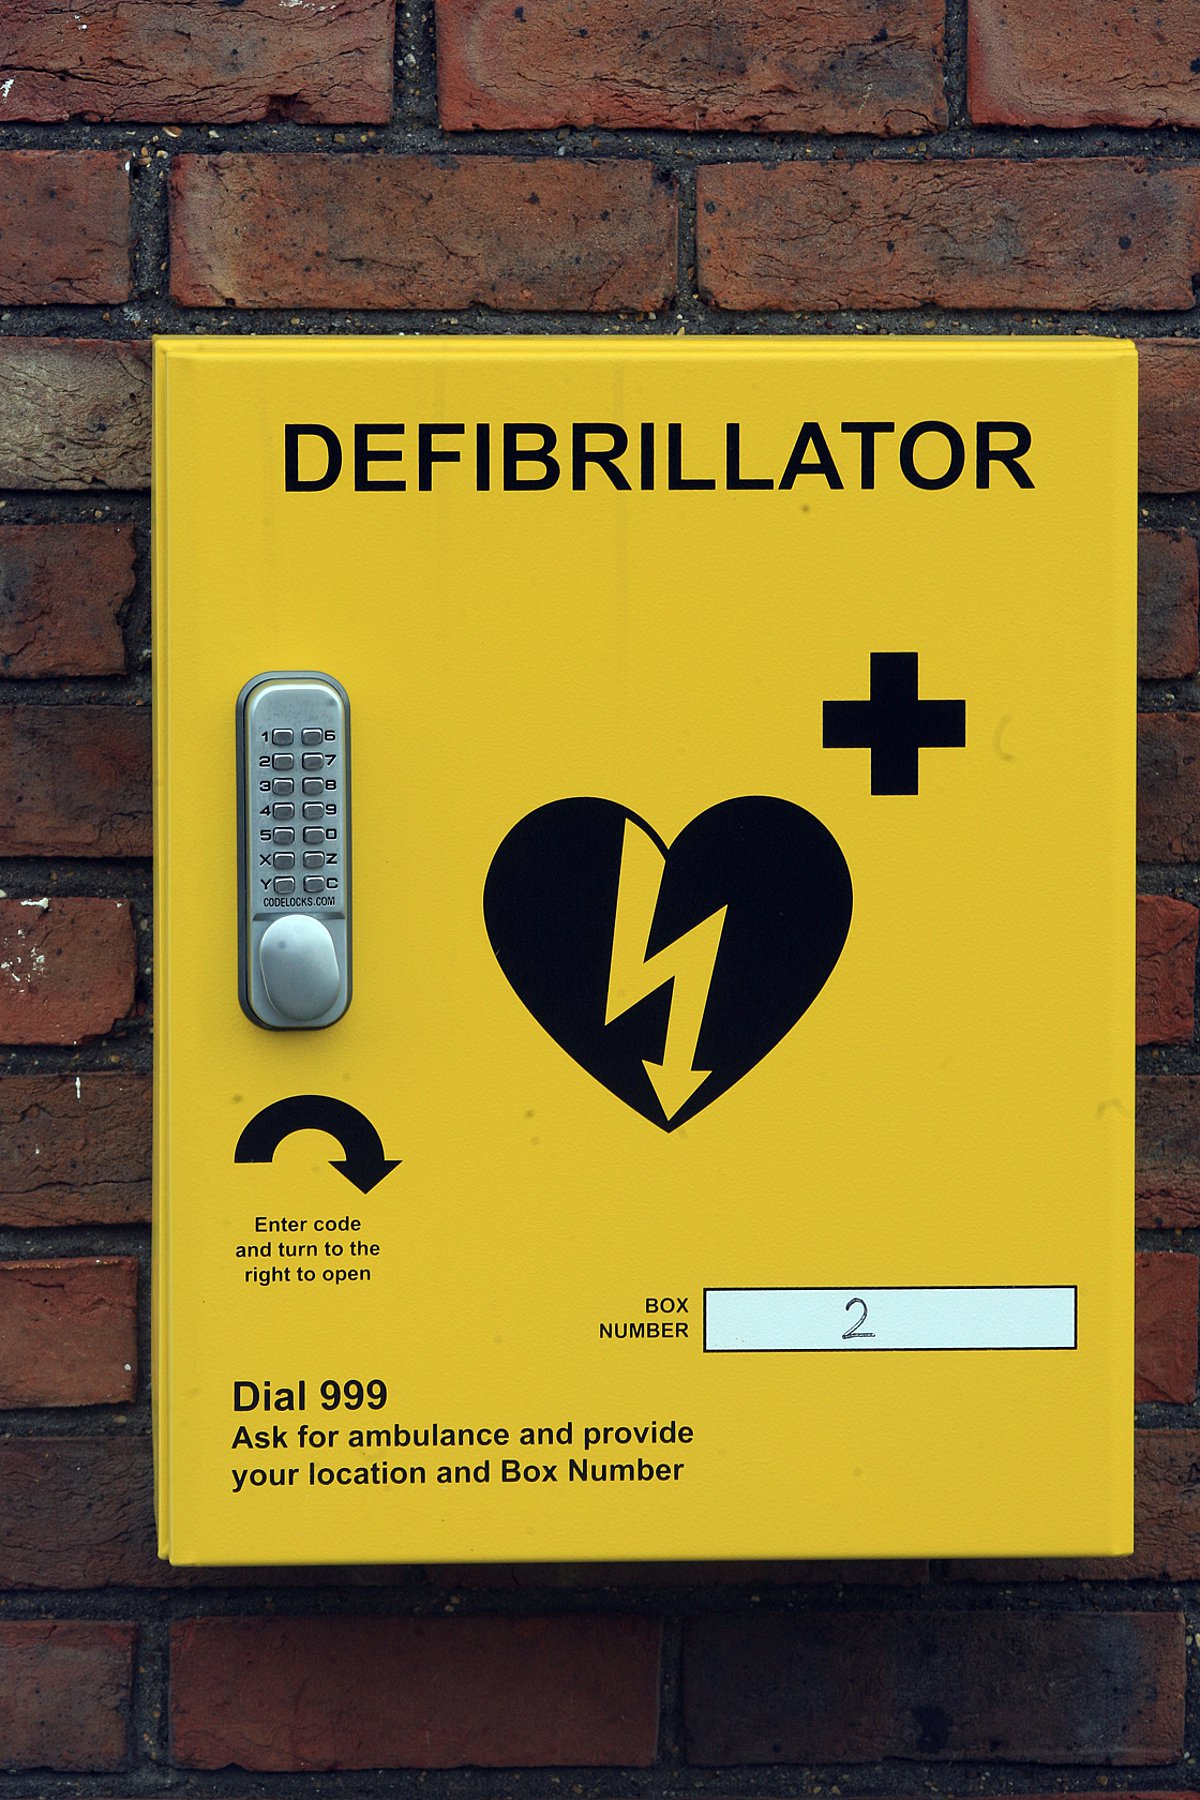 School defibrillator plan could save lives